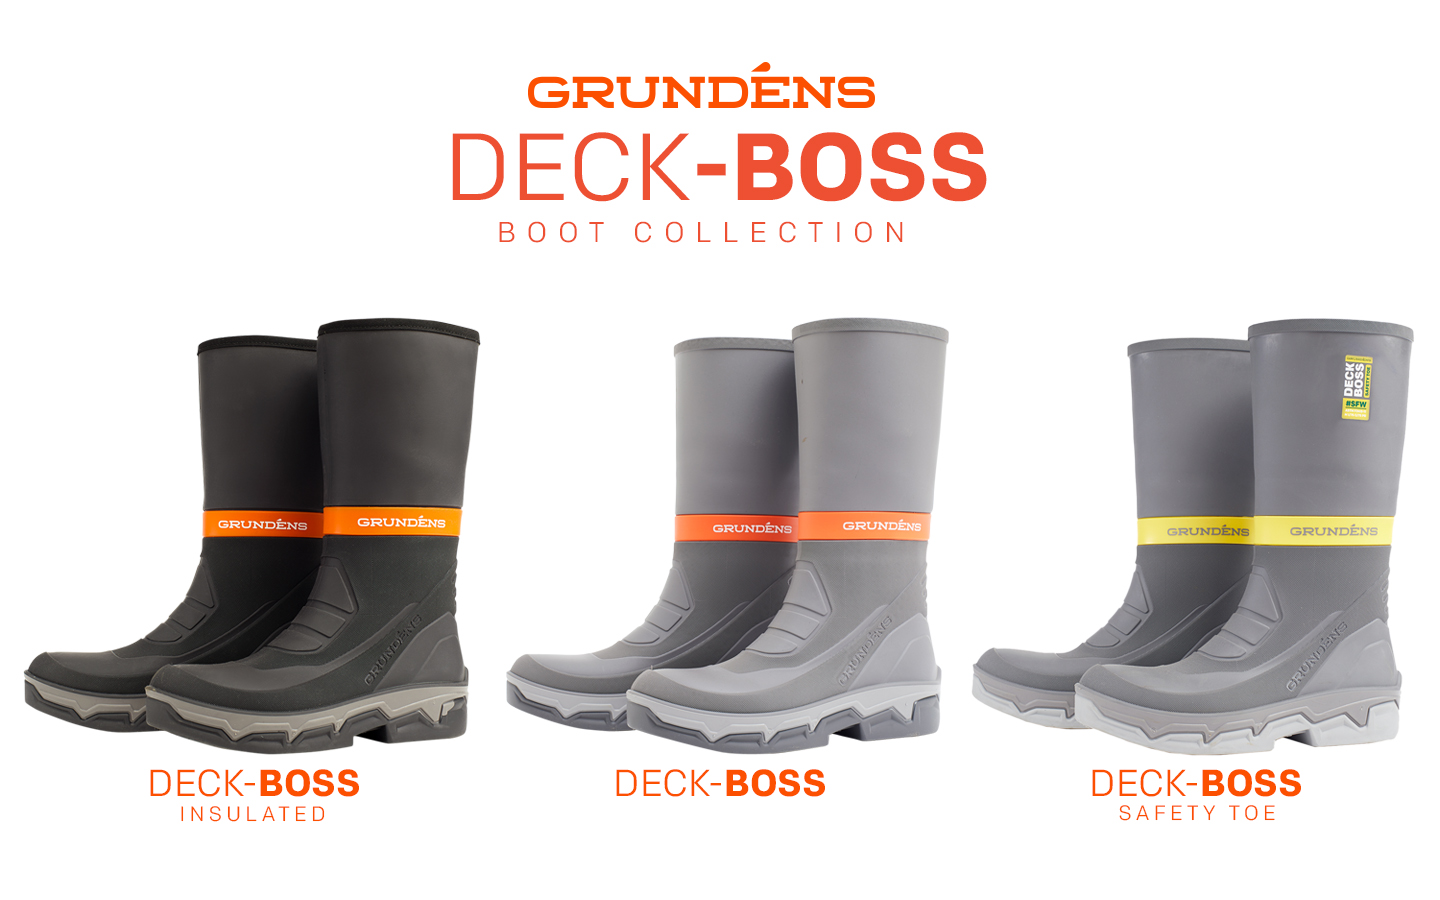 Grundéns Deck-Boss Boot Collection